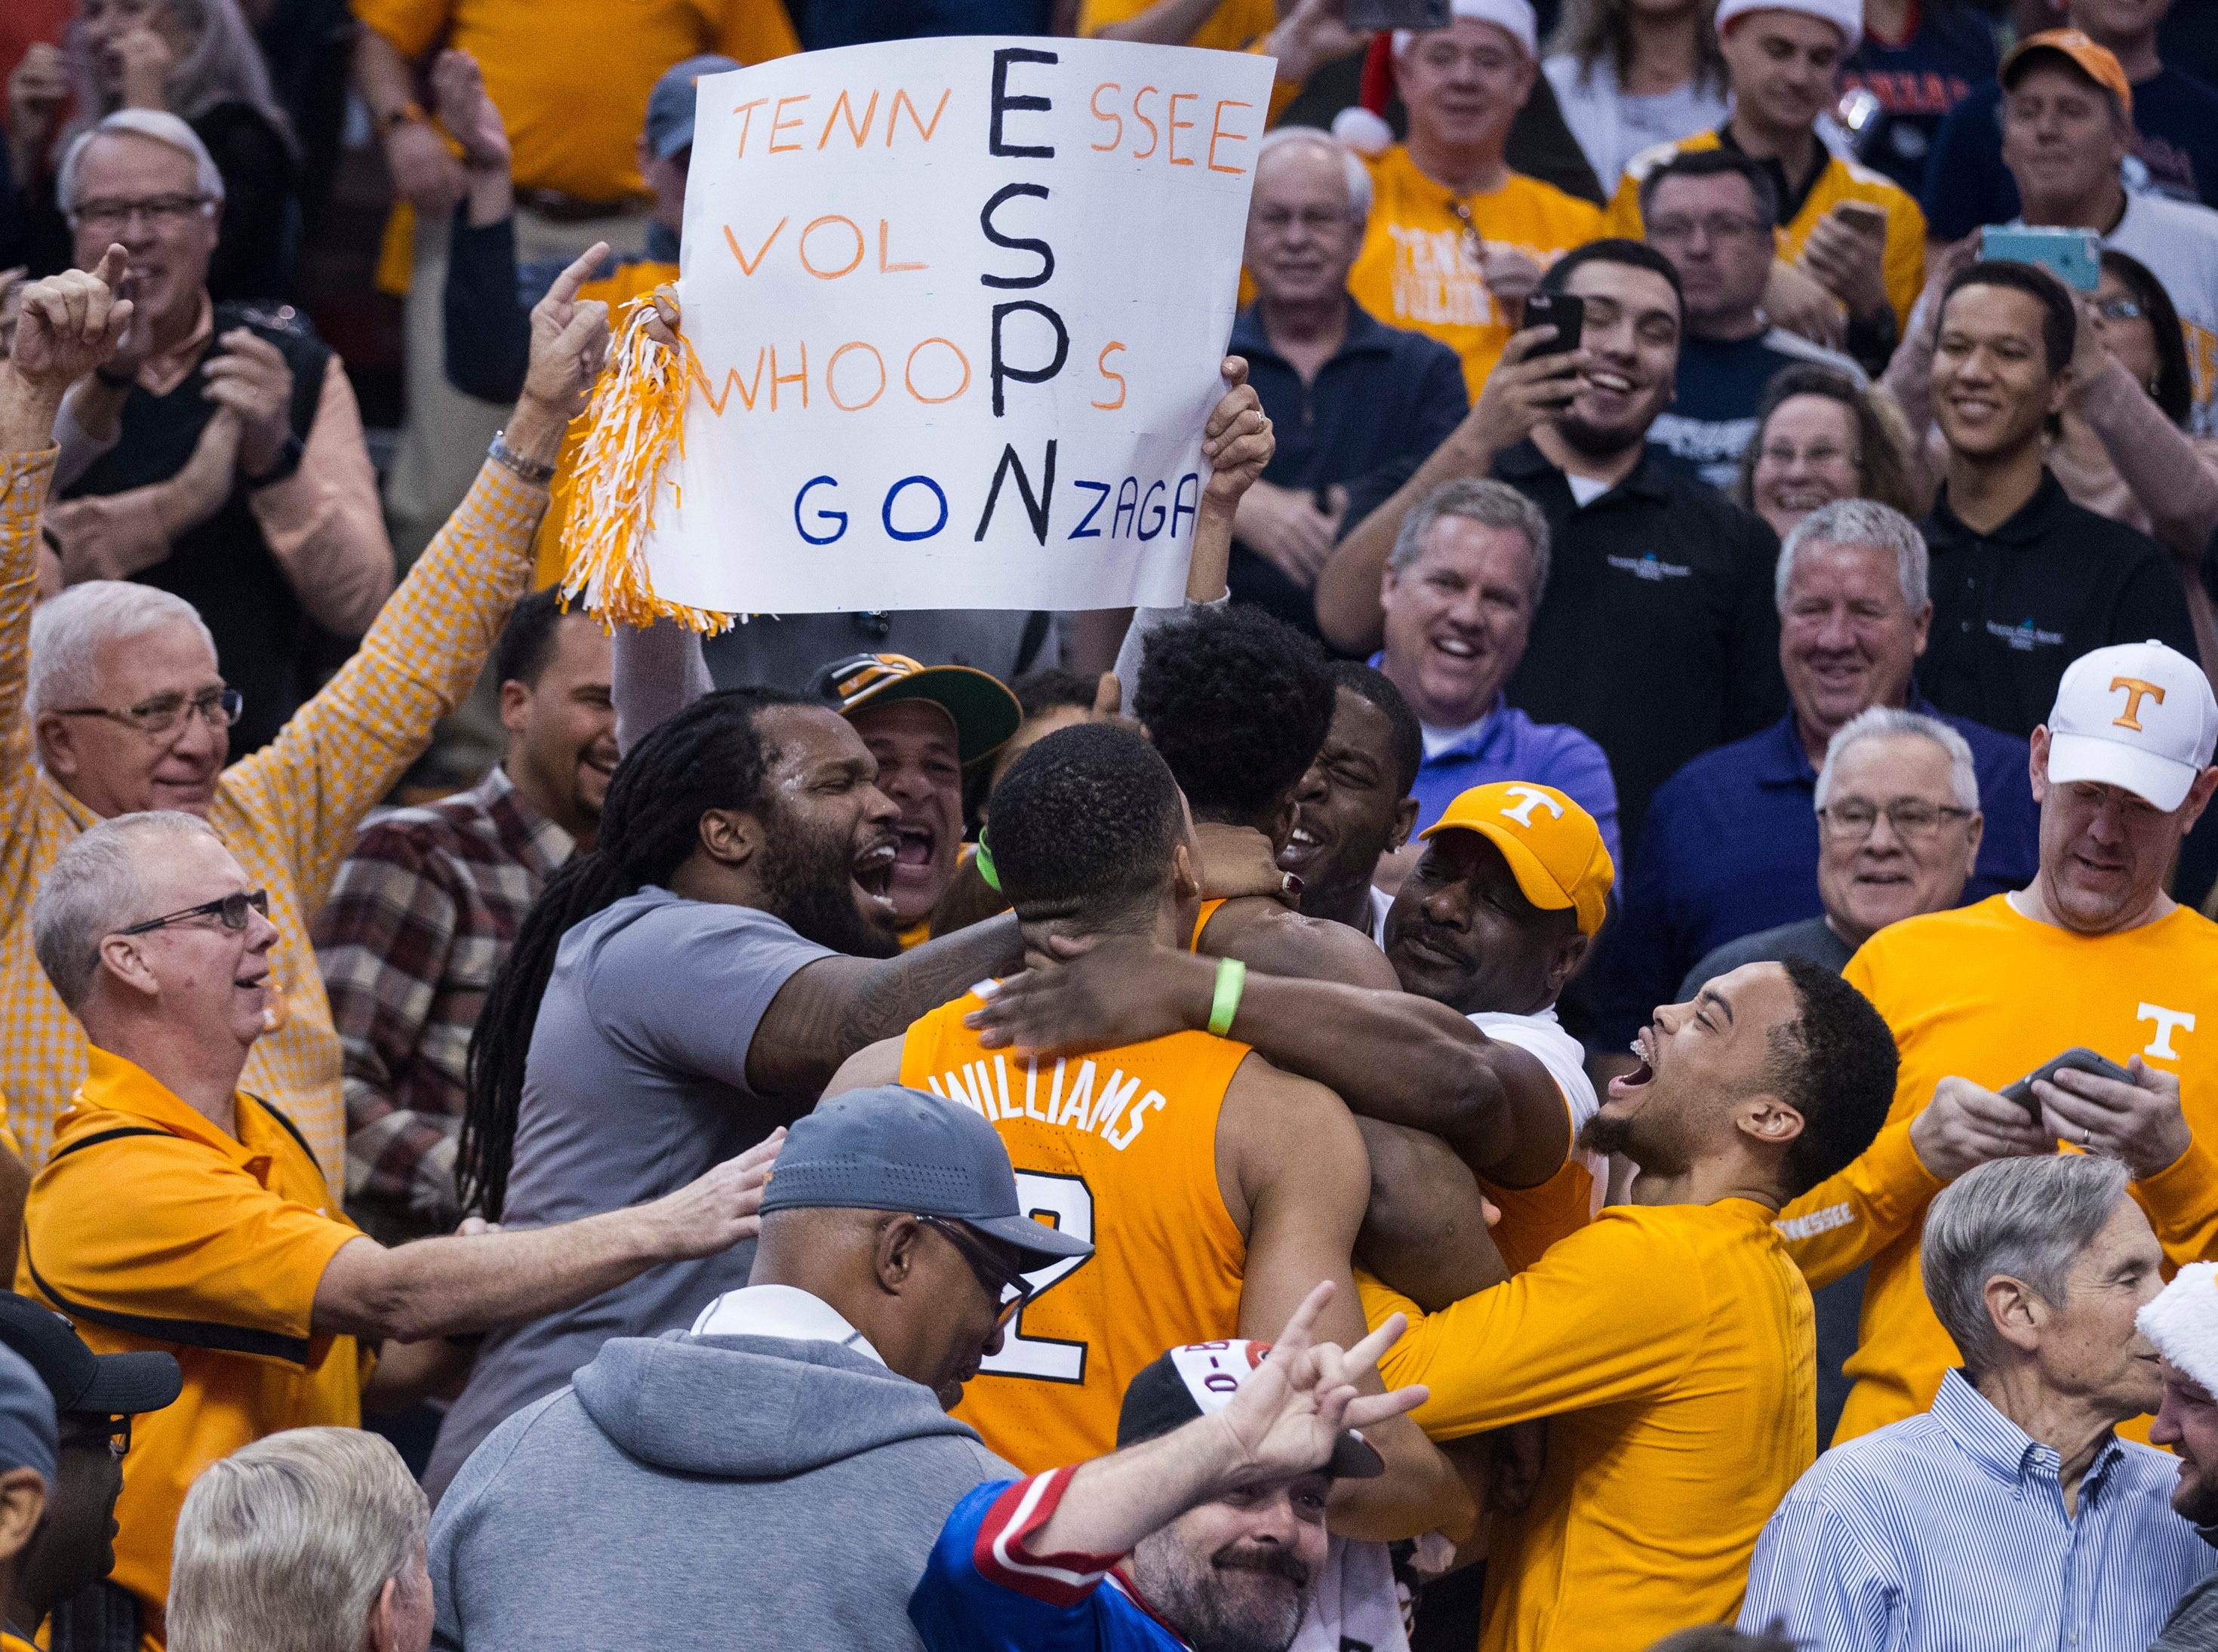 Tennessee's Admiral Schofield (5) and Grant Williams (2) goes into the crowd to celebrate with fans their win over Gonzaga in an NCAA college basketball game Sunday, Dec. 9, 2018, in Phoenix.